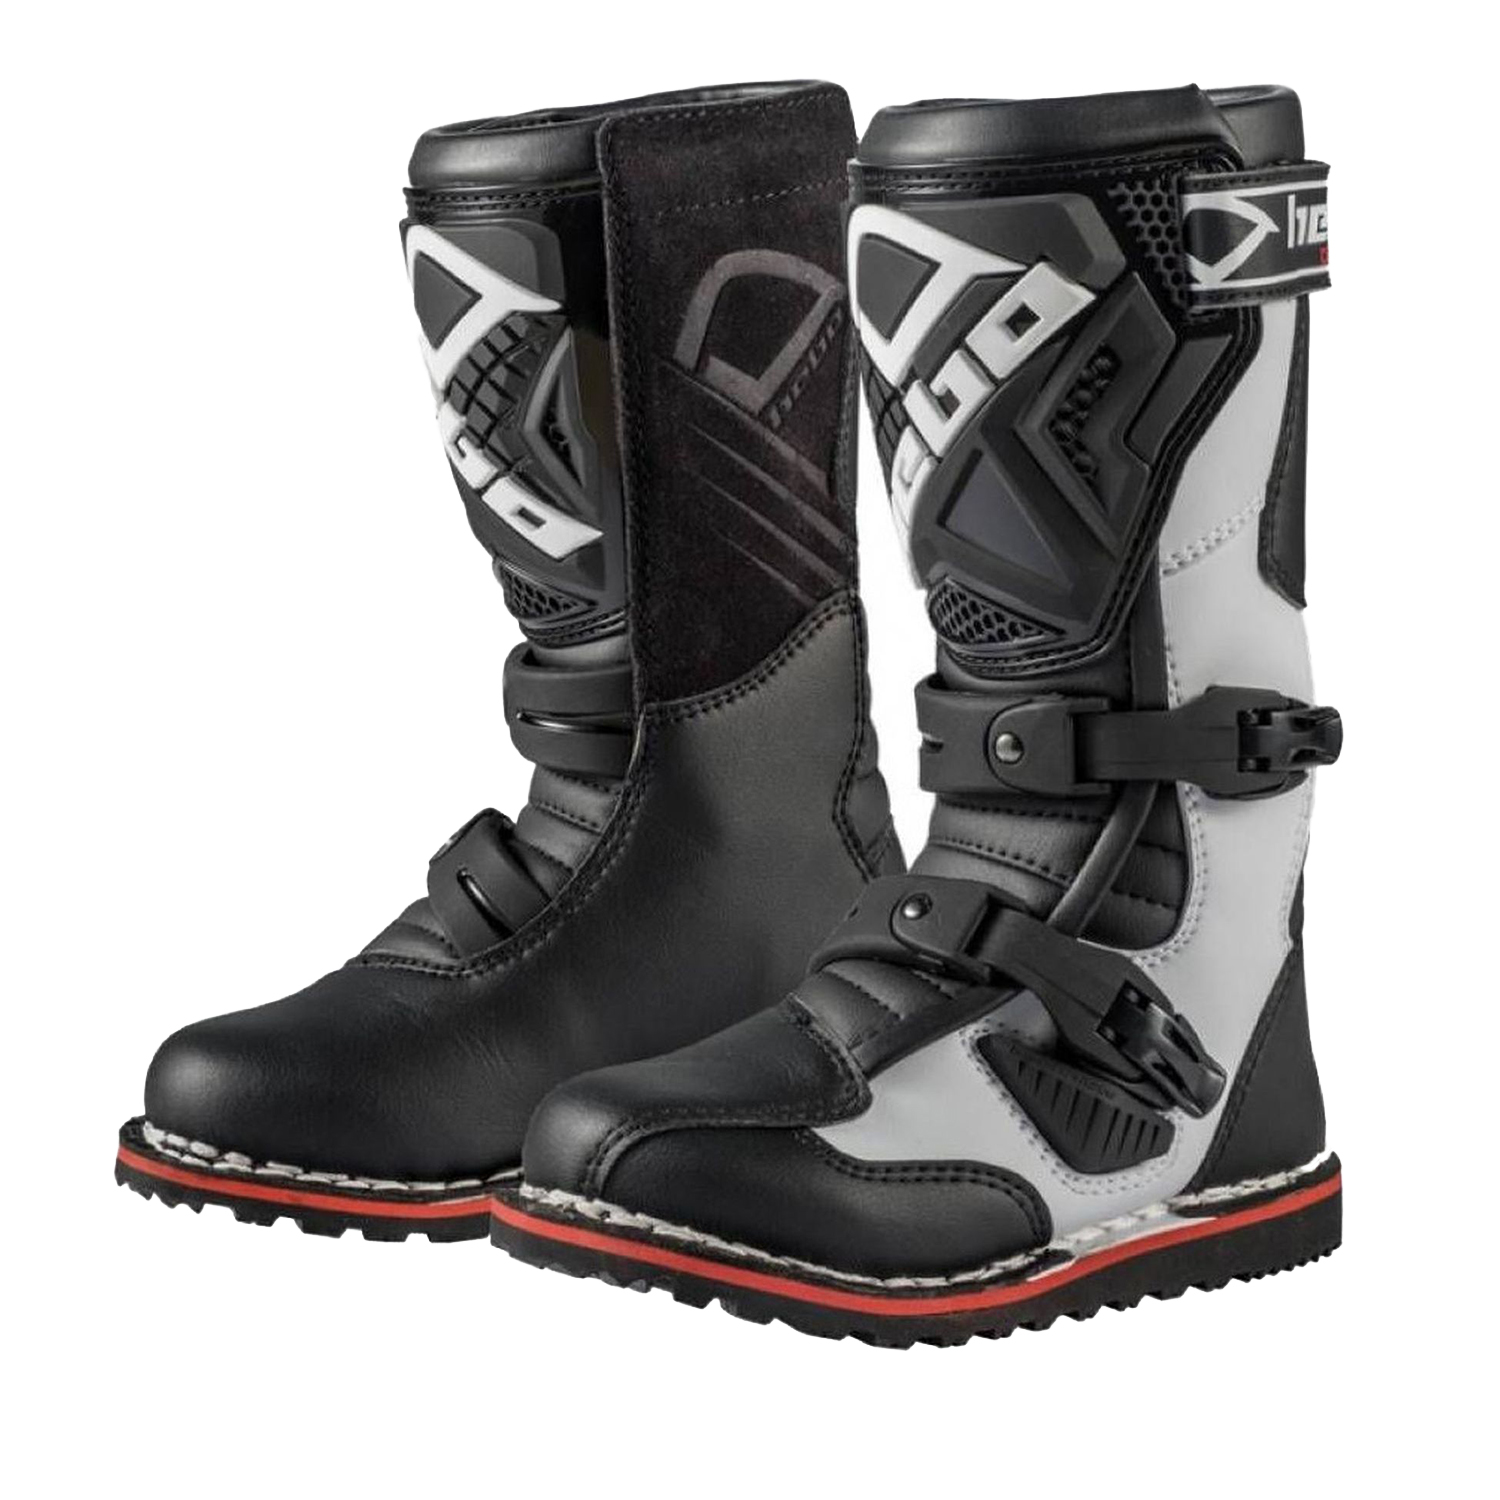 Trials Boots rea hos Dirtbikebitz